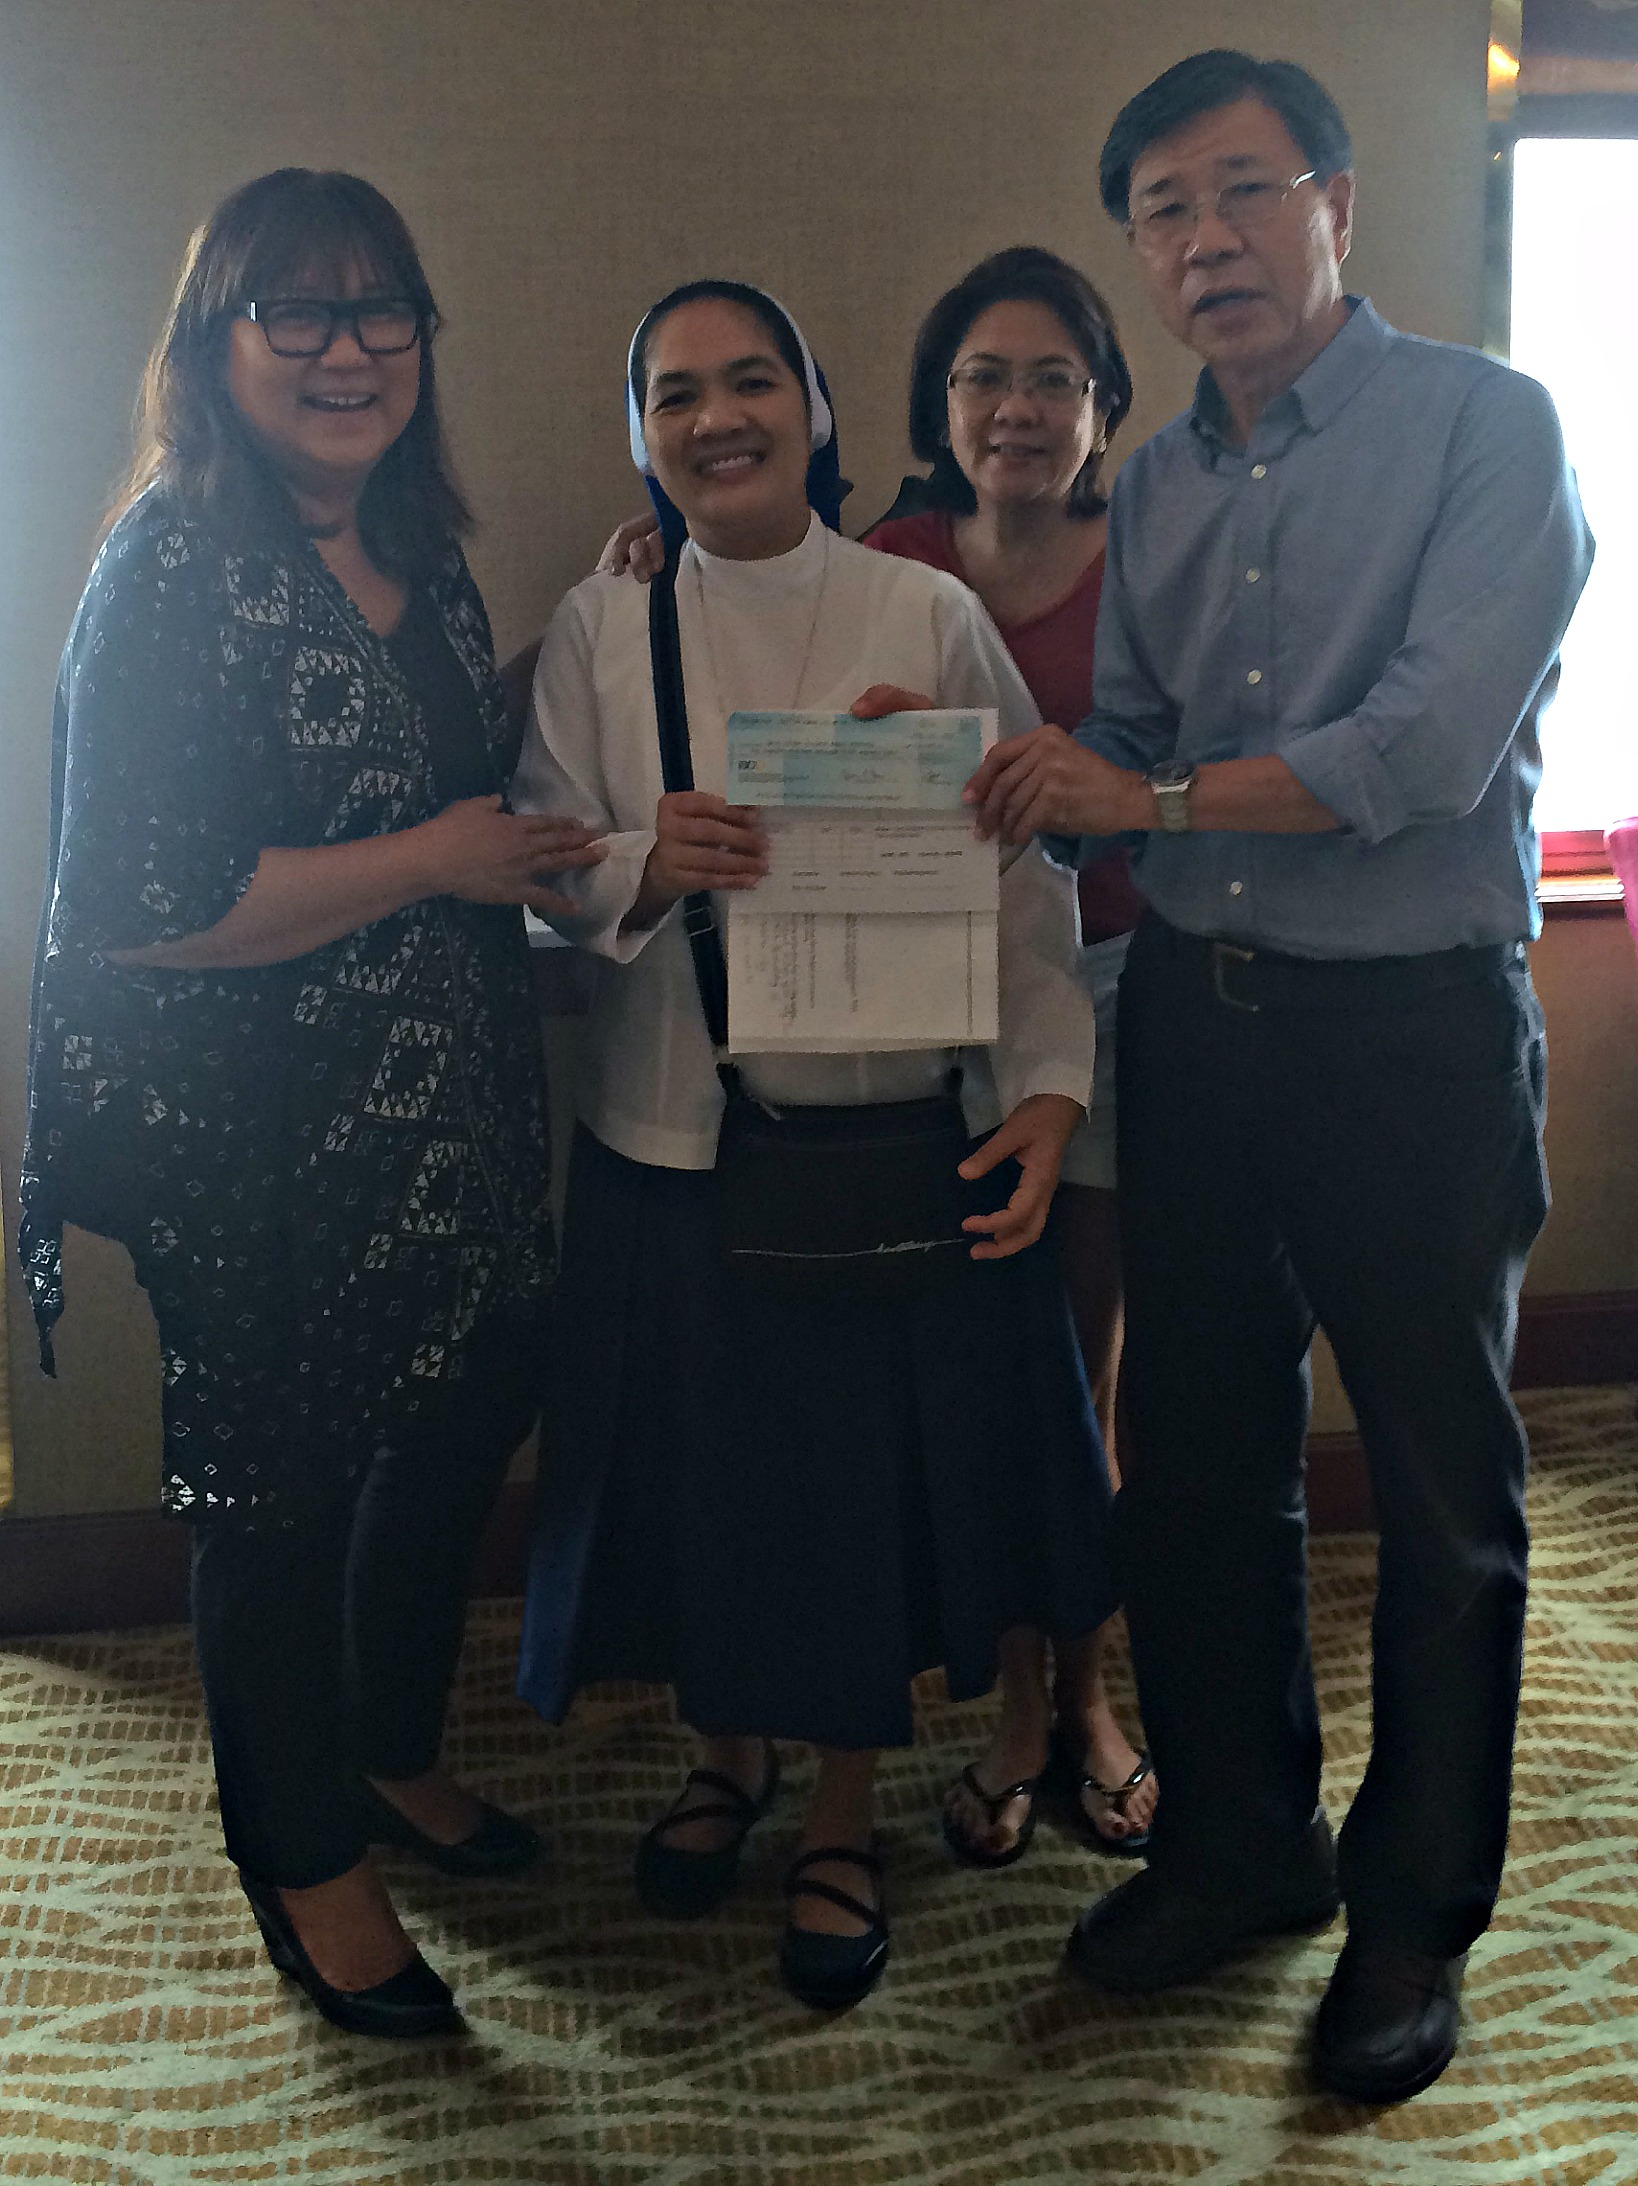 Sister Sonia Marie Ubaldo, Treasurer of Holy Infant College of Tacloban City, receiving the donation check ($5,000 = P215,500.00) for the Holy Infant College of Tacloban City, Inc. for the   Balay Darangpanan - Mercy Center - as the Psychosocial Healing Center for Women, Girls and Children Survivors of Typhoon Yolanda   from Marily Mondejar, Filipina Women's Network Founder & CEO, Dr Bambi Lorica, Filipina Women's Network Board Member, Martin Gaw, Lamco International and Volunteer for Feed the Hungry Fil AM Inc, at the Makati Shangri-La Hotel, Philippines, October 15, 2014.